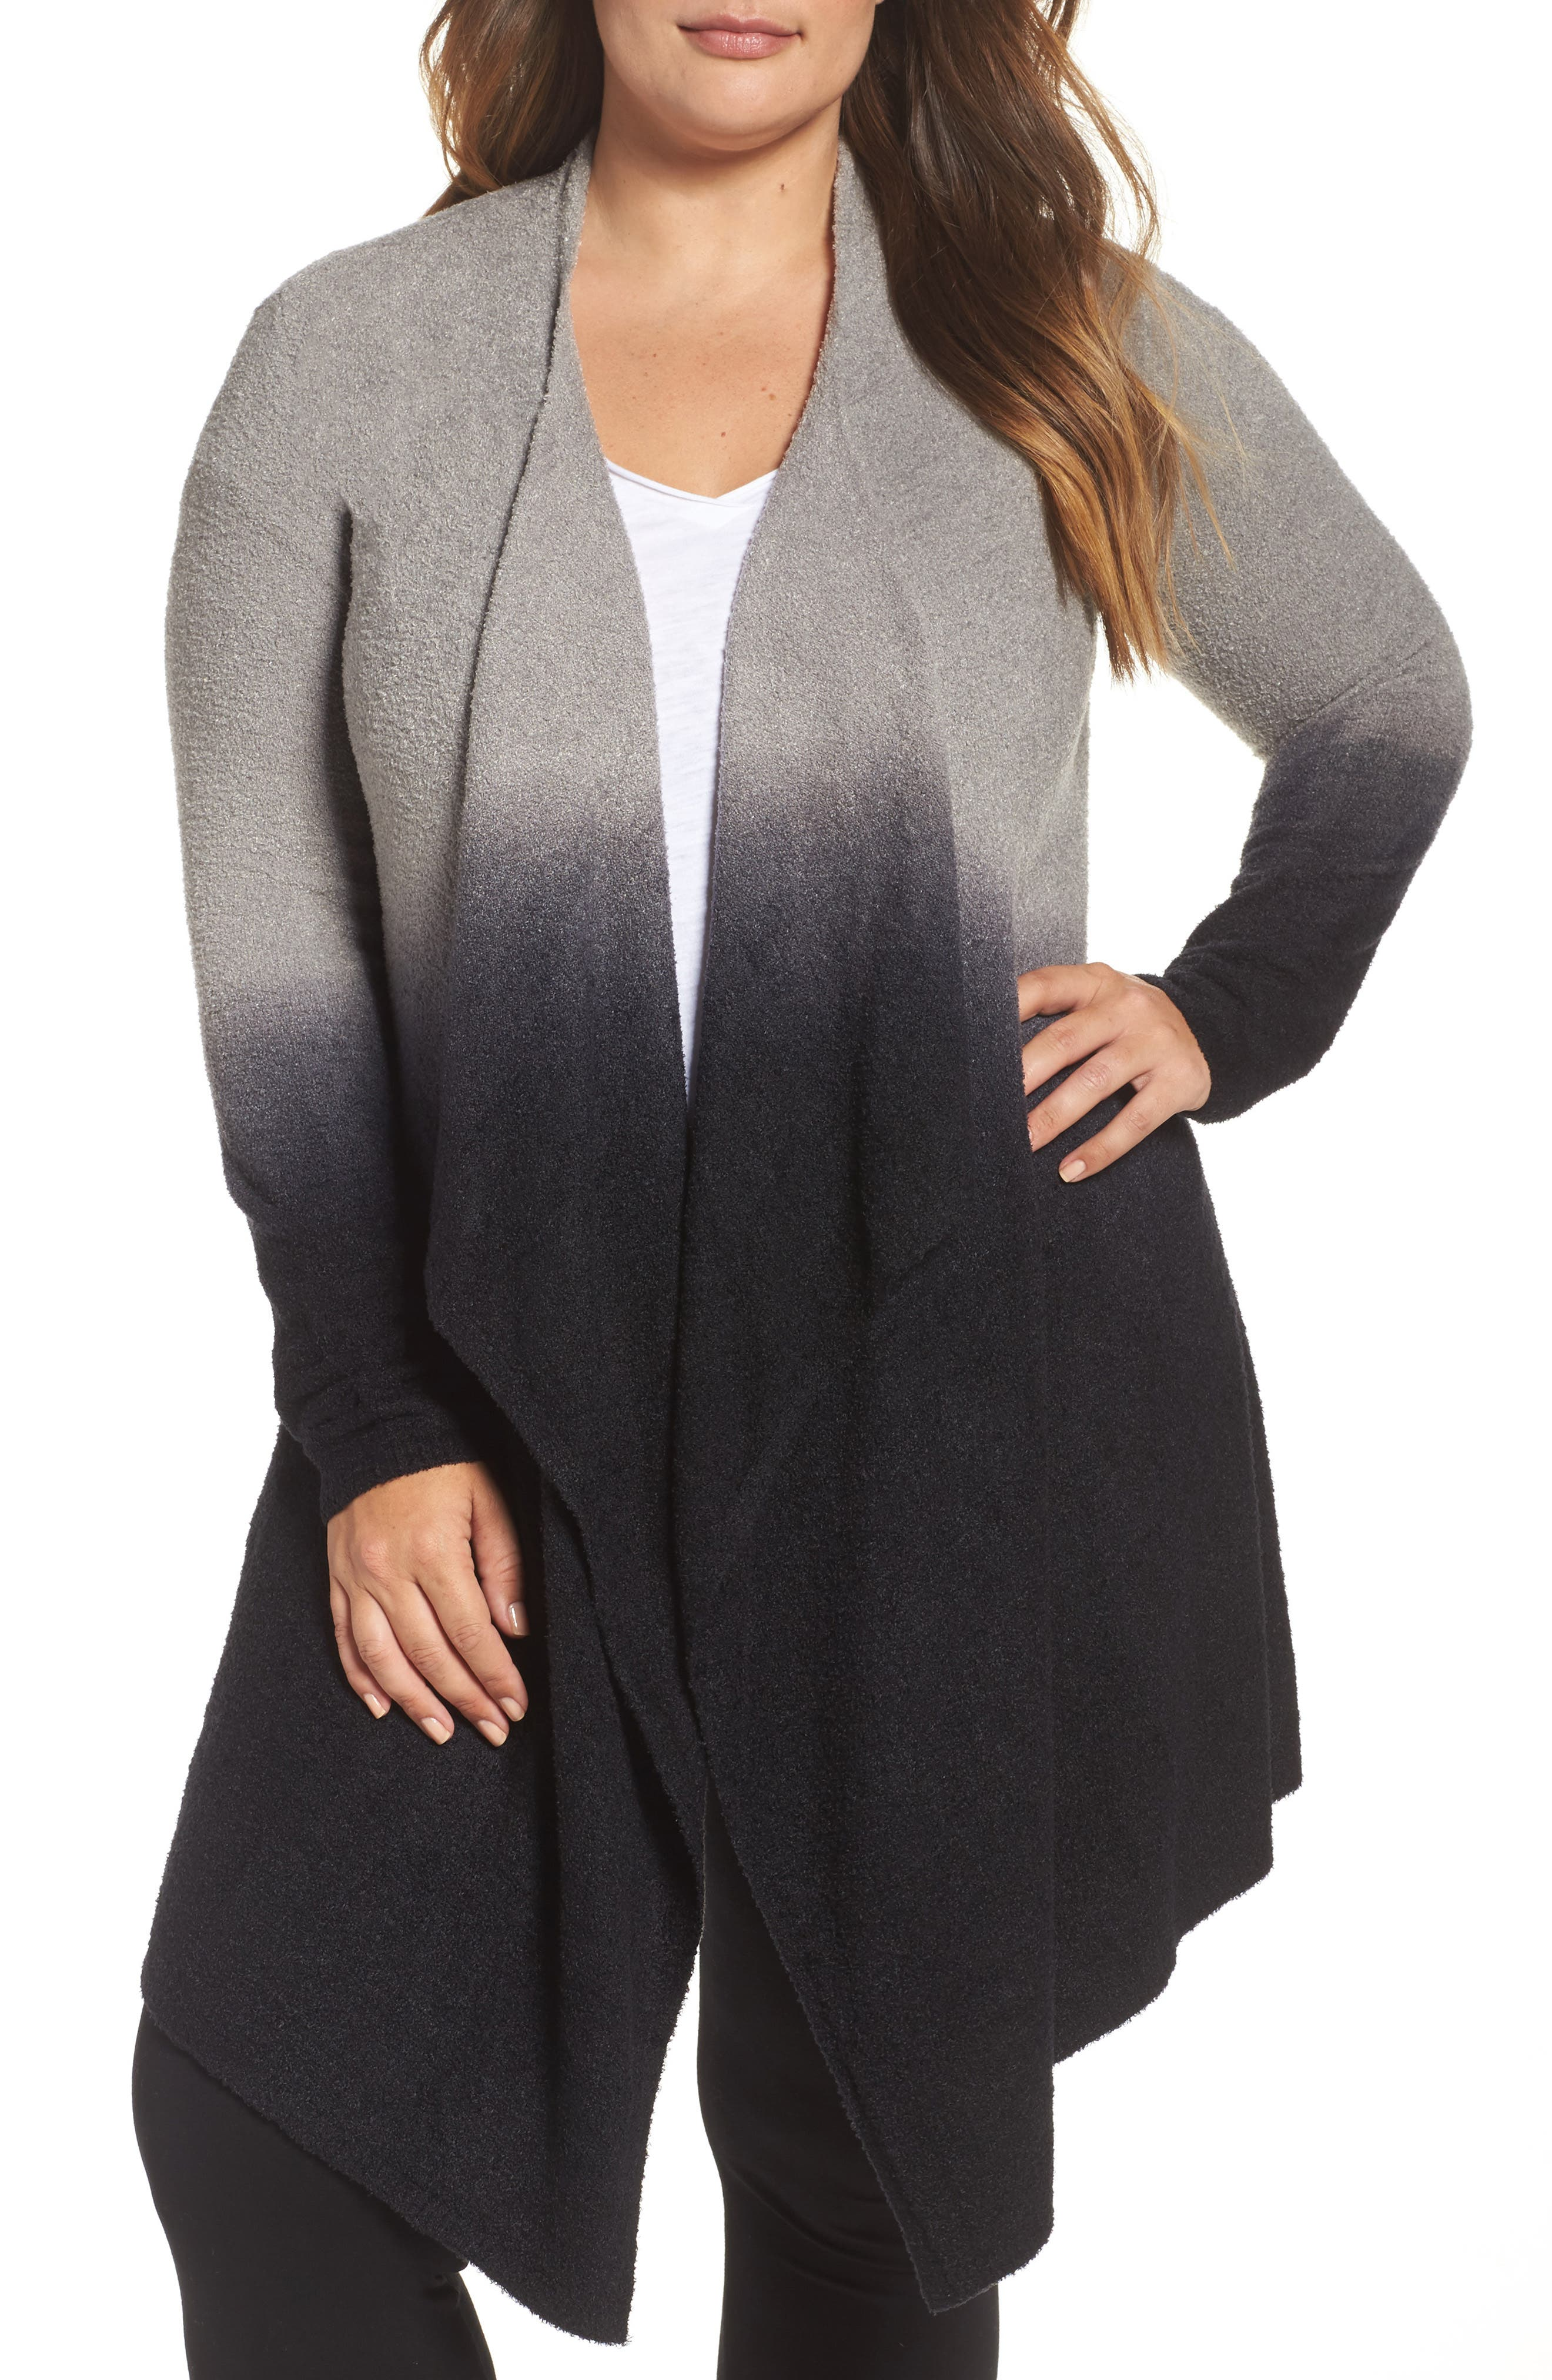 Alternate Image 1 Selected - Barefoot Dreams® CozyChic Lite® Calypso Wrap Cardigan (Plus Size) (Nordstrom Exclusive)